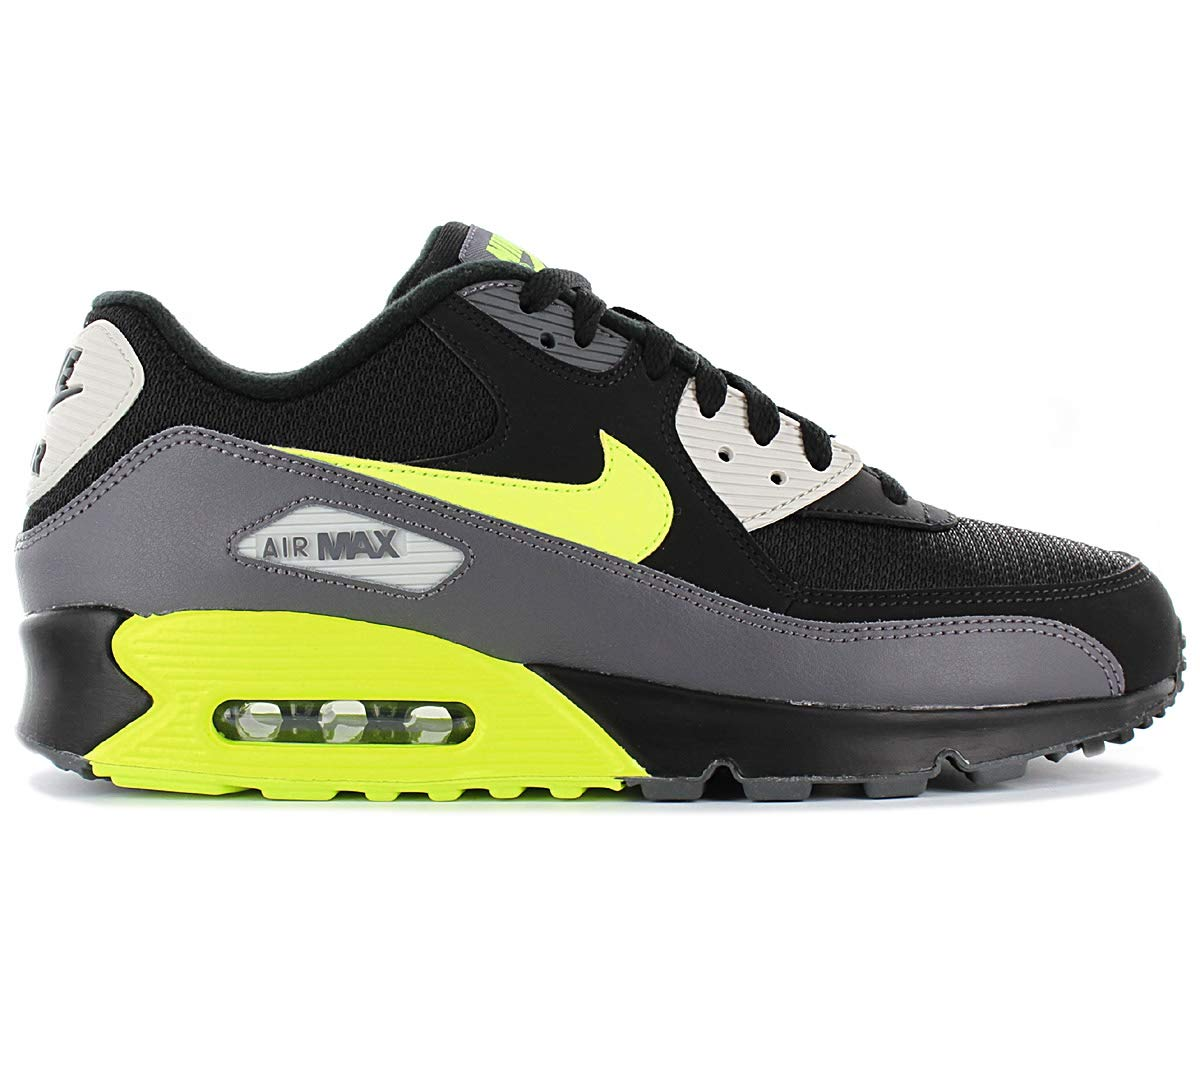 best website ab1b6 977a1 Nike Mens Air Max 90 Essential Running Shoes Dark Grey/Volt/Black/Bone  AJ1285-015 Size 8.5